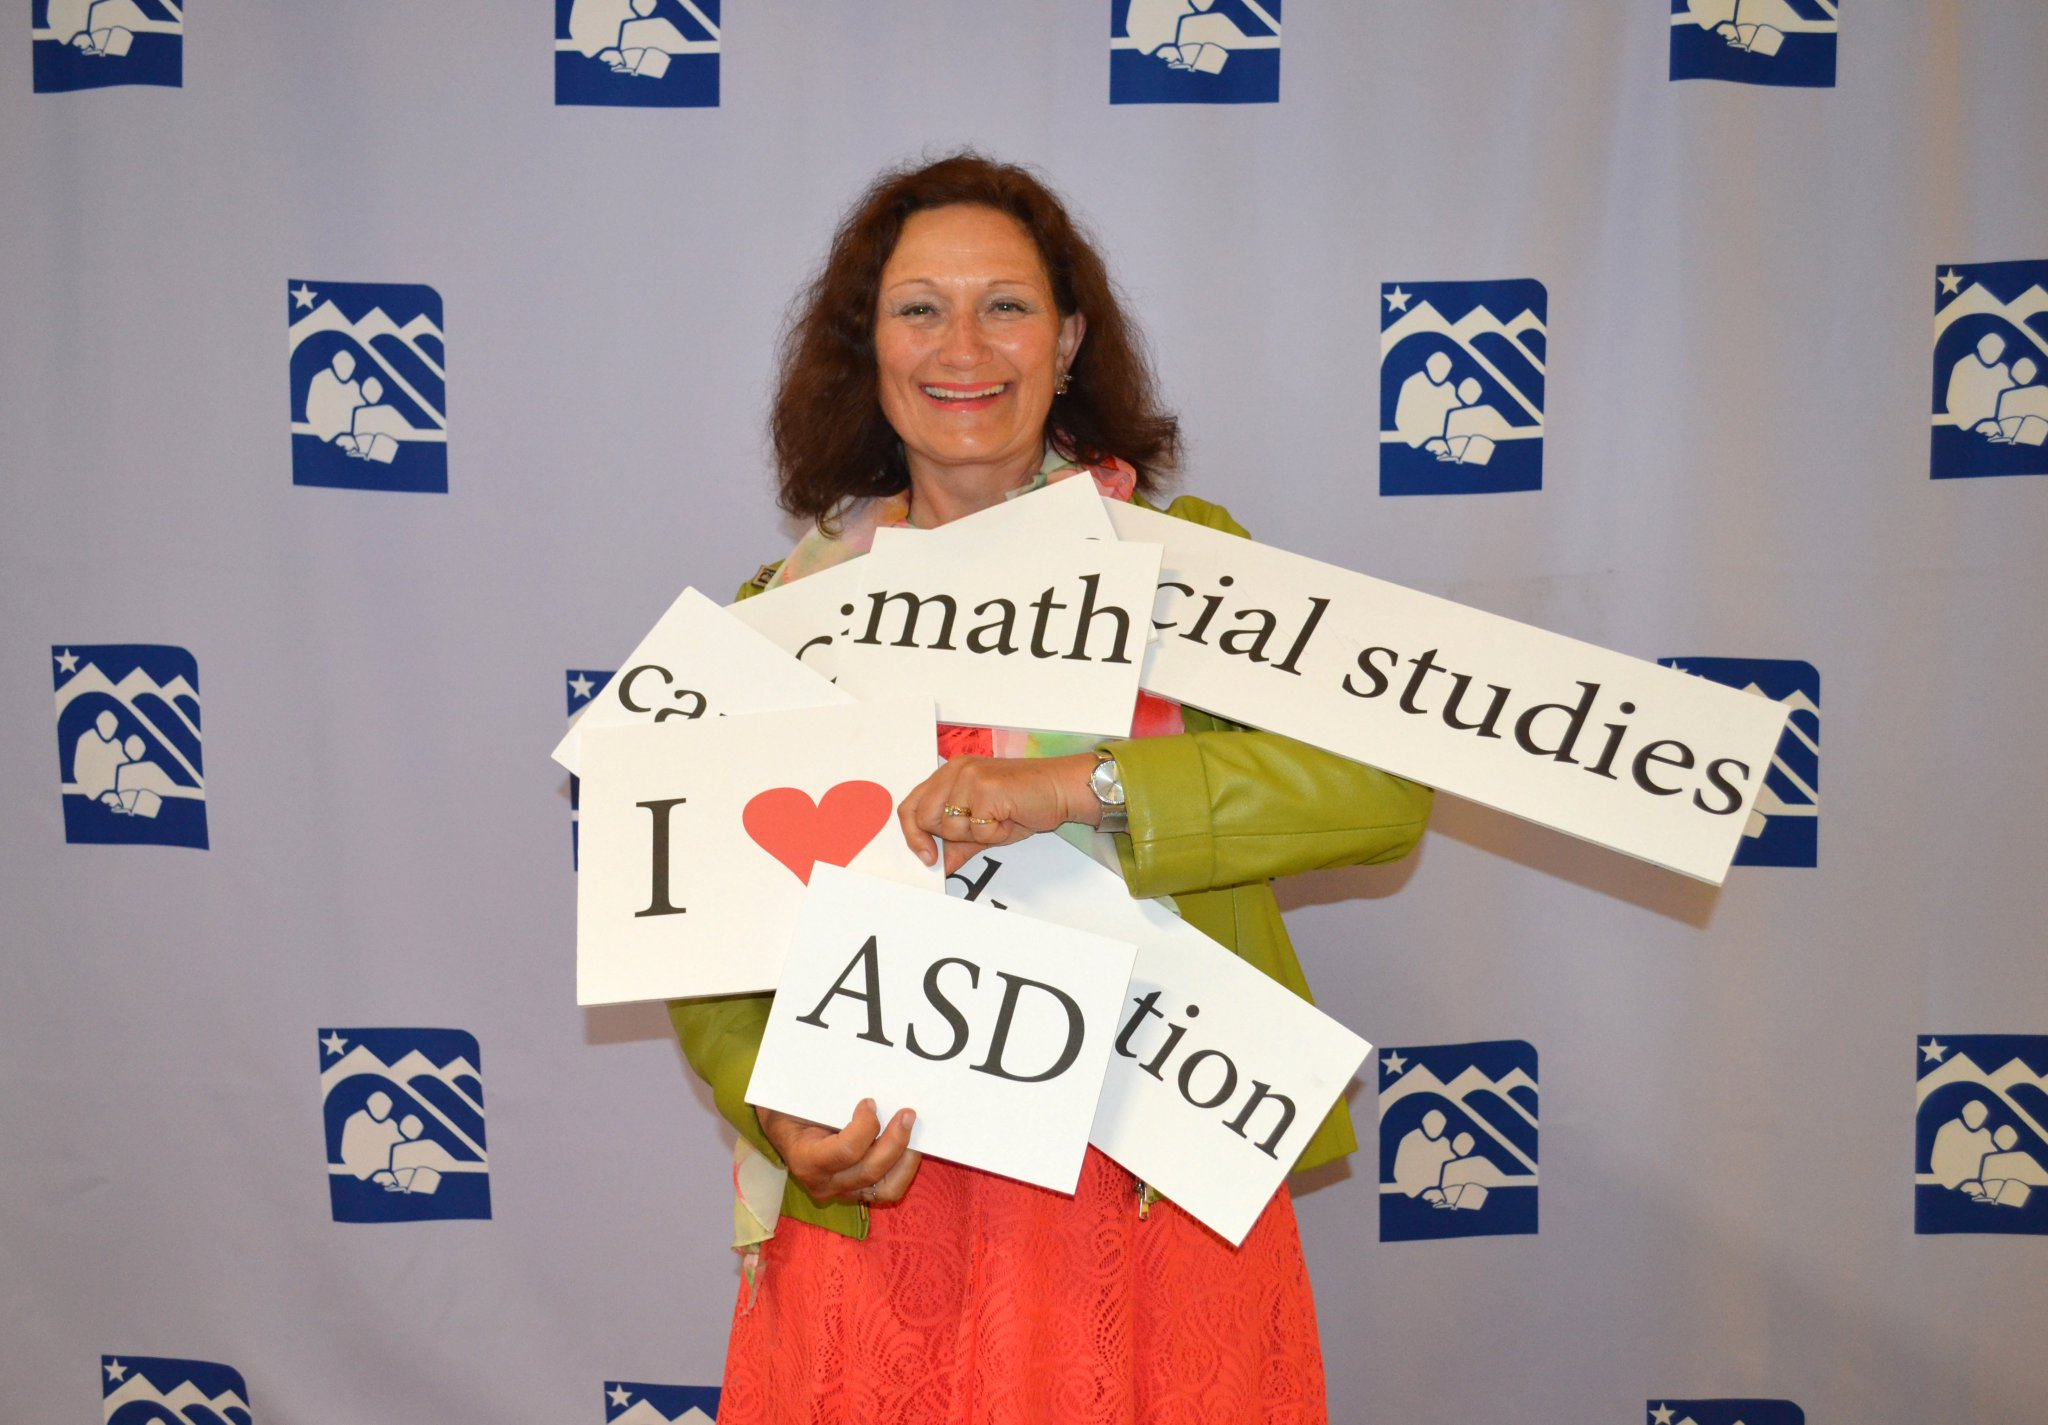 Tam holds up signs celebrating the Anchorage School District.